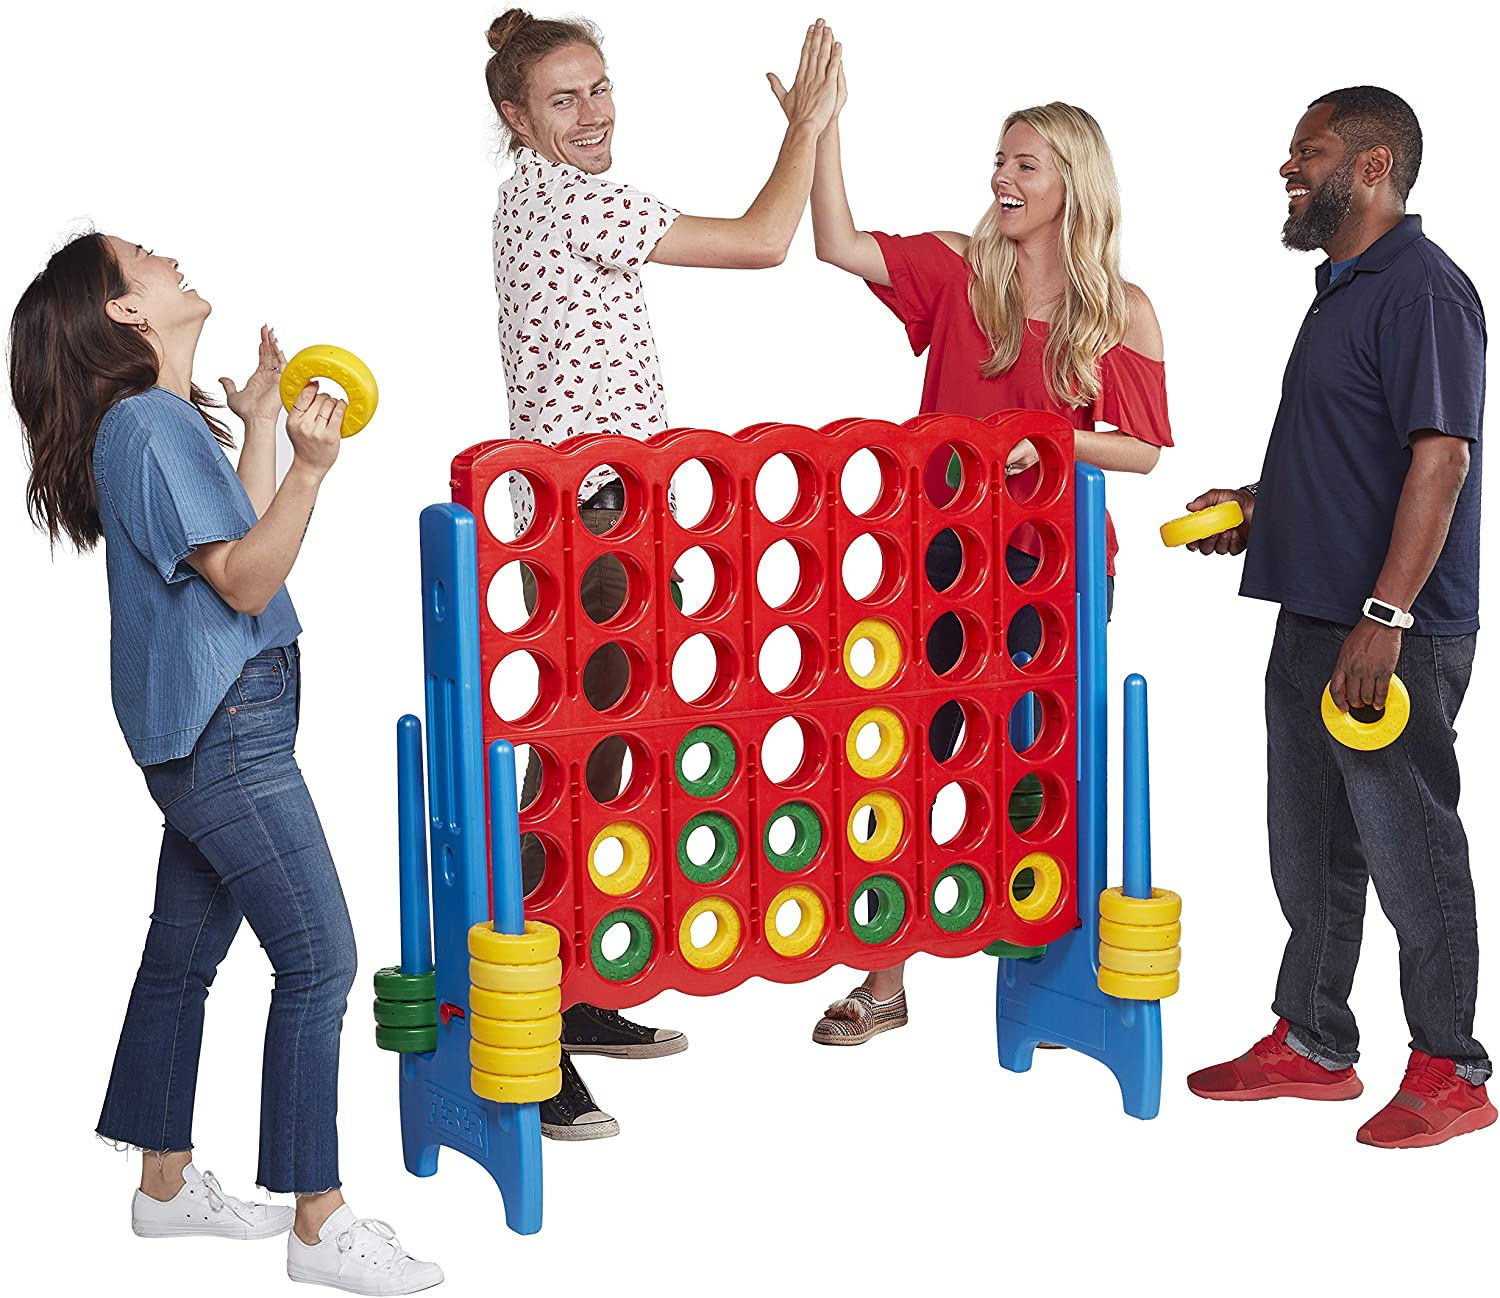 NEW LINE UP 4 GAME IN PRINTED BOX Connect 4 Counters Together Family Fun Games